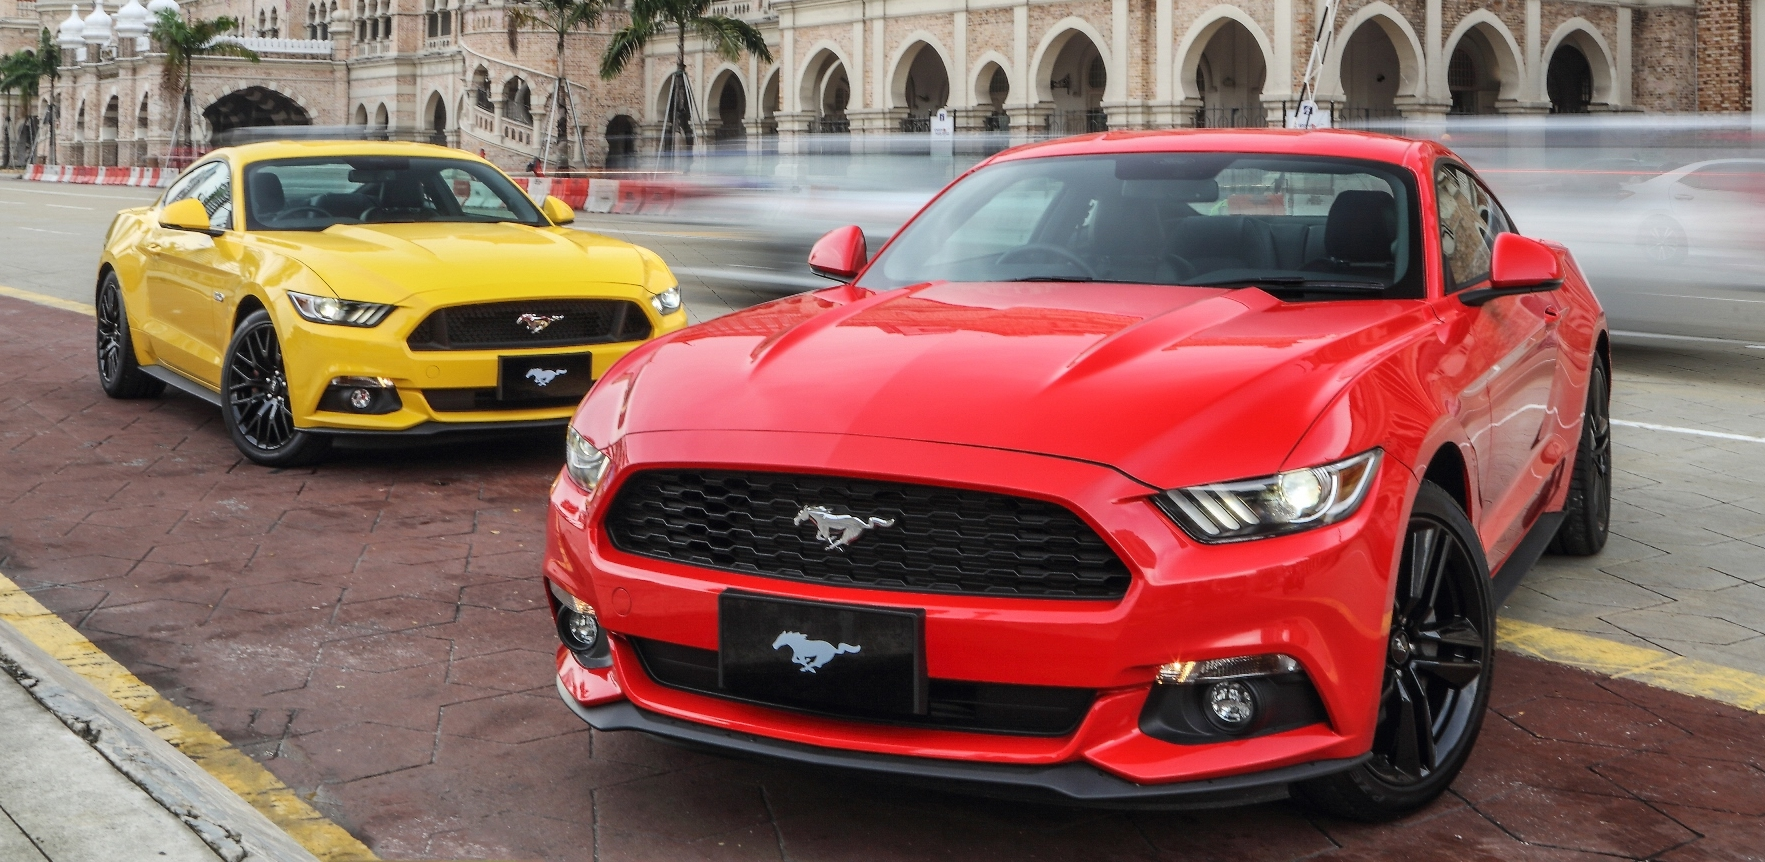 2018 Ford Mustang Facelift To Get 10 Spd Auto Report